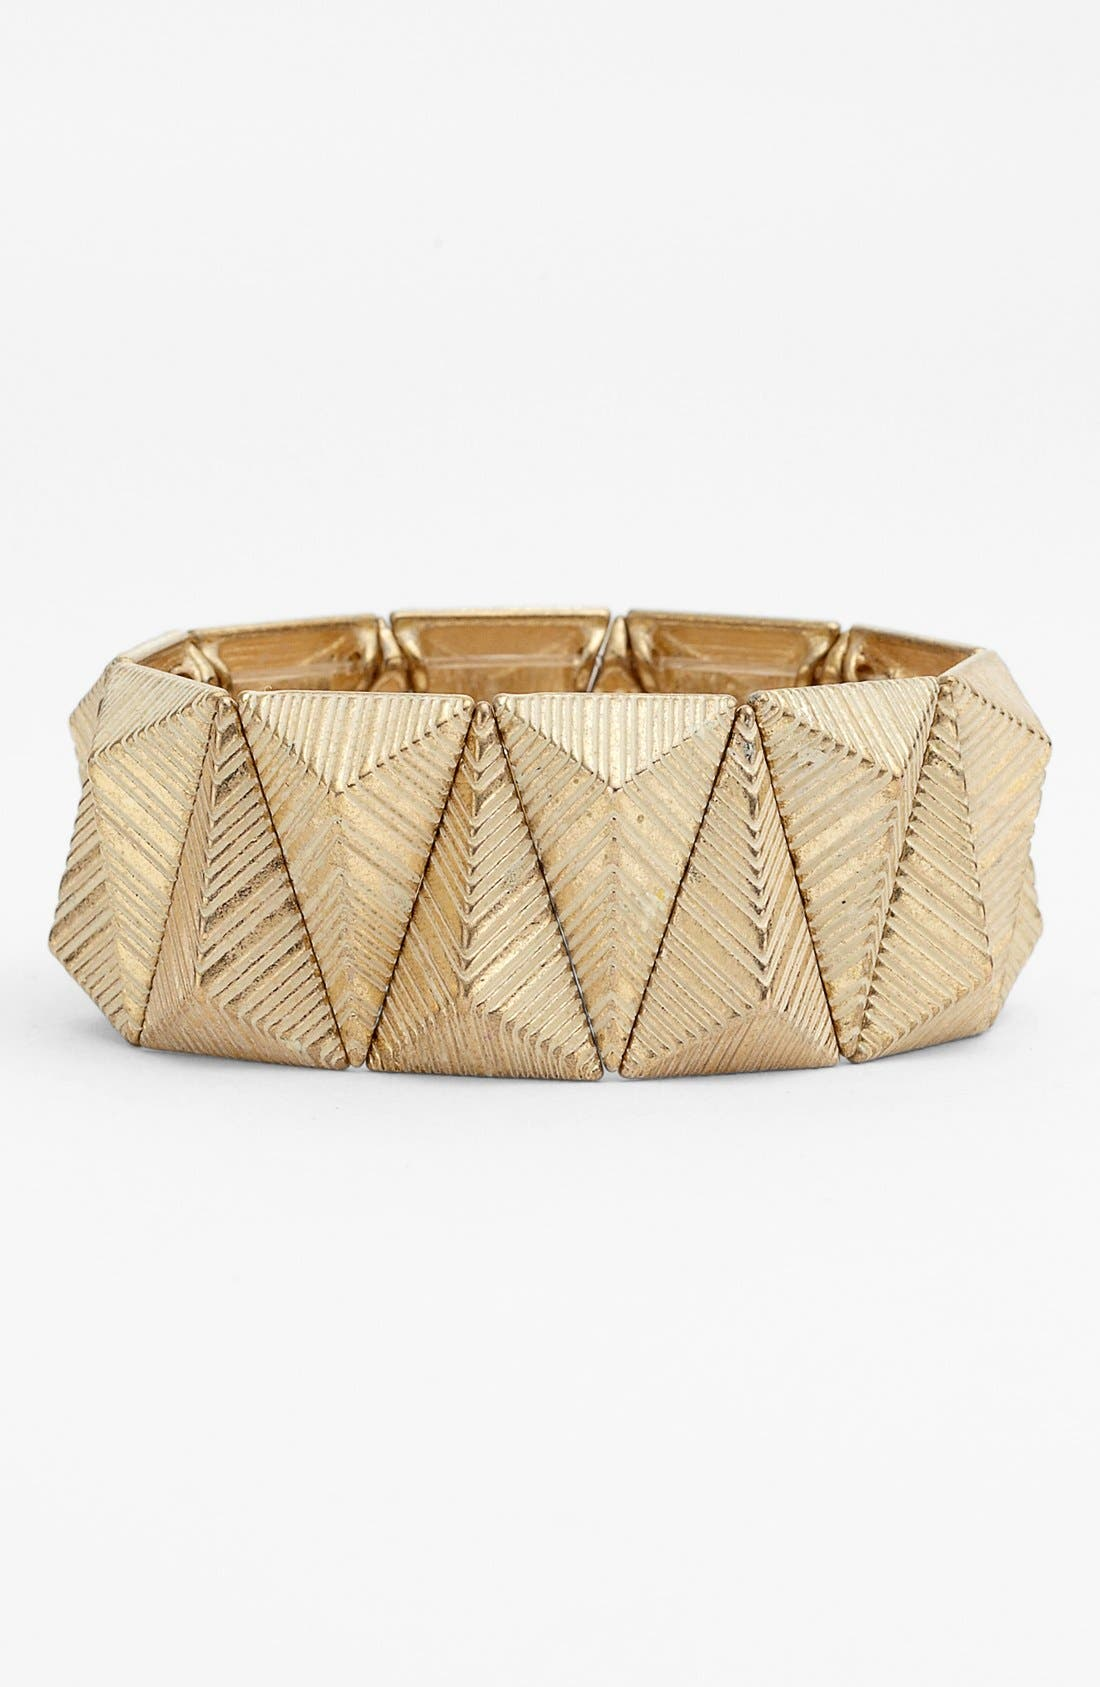 Alternate Image 1 Selected - NICO NEW YORK 'Pastel Triangle' Stretch Bracelet